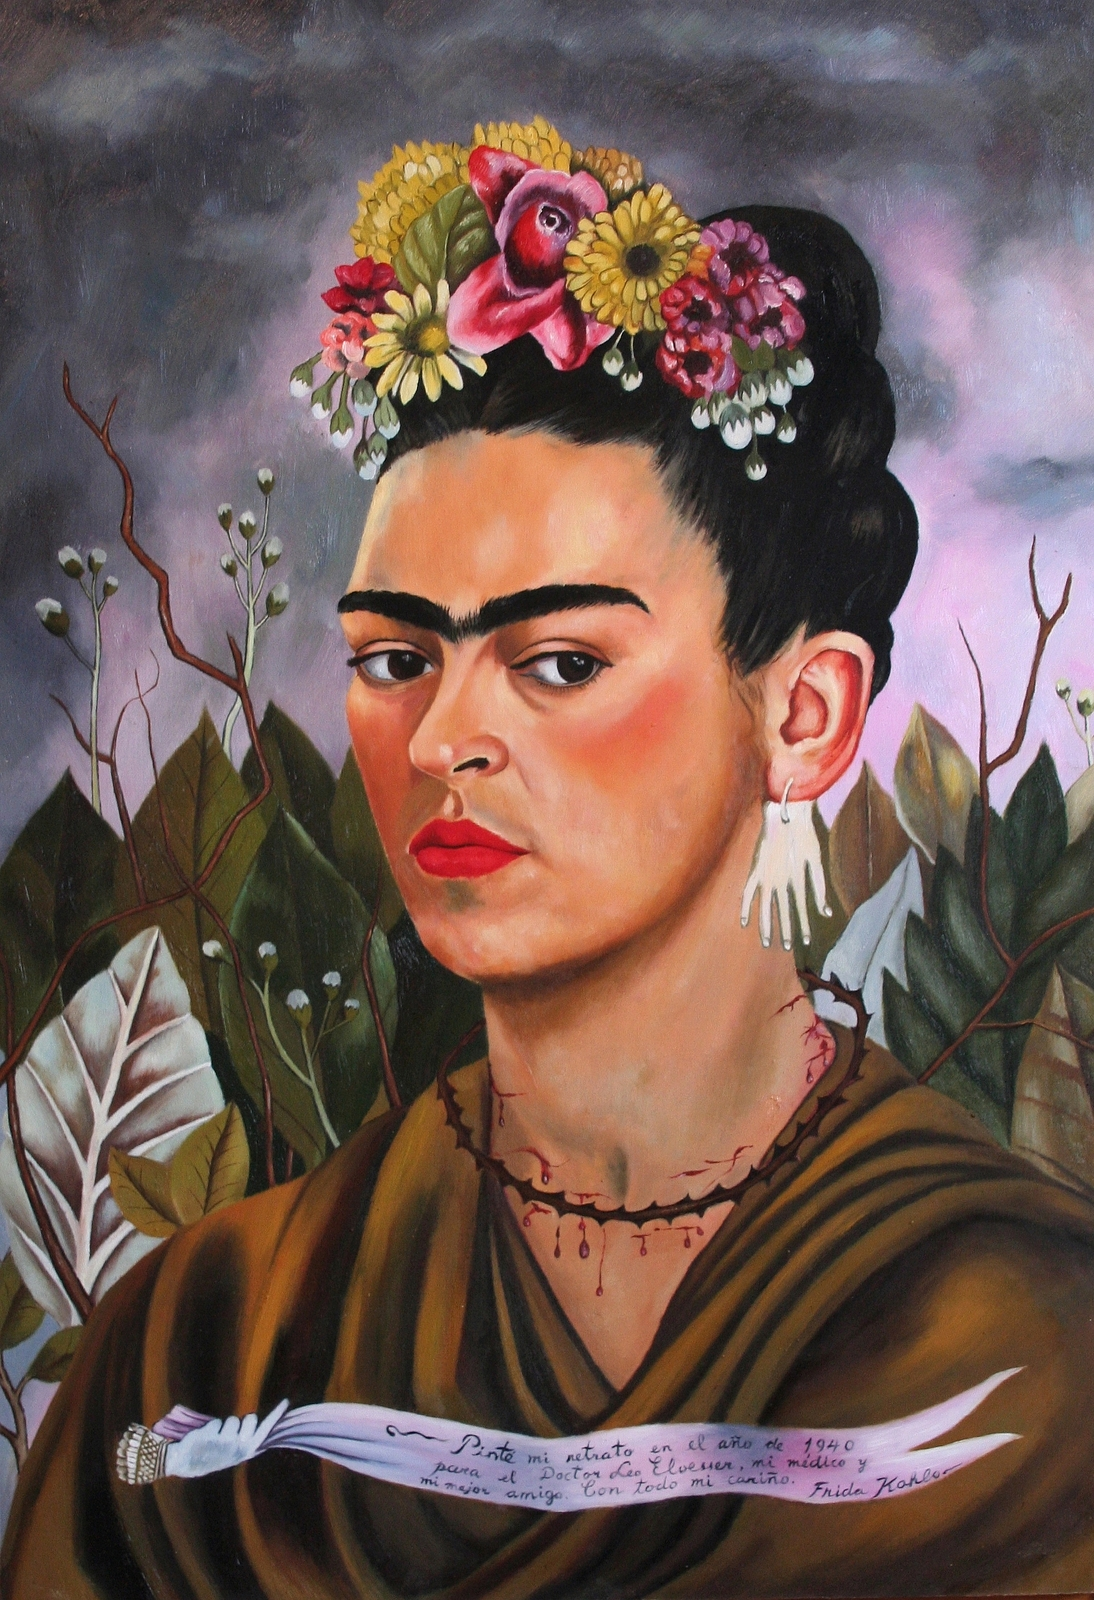 frida khalo Frida kahlo - the complete works, large resolution images, ecard, rating, slideshow and more one of the largest frida kahlo resource on the web.